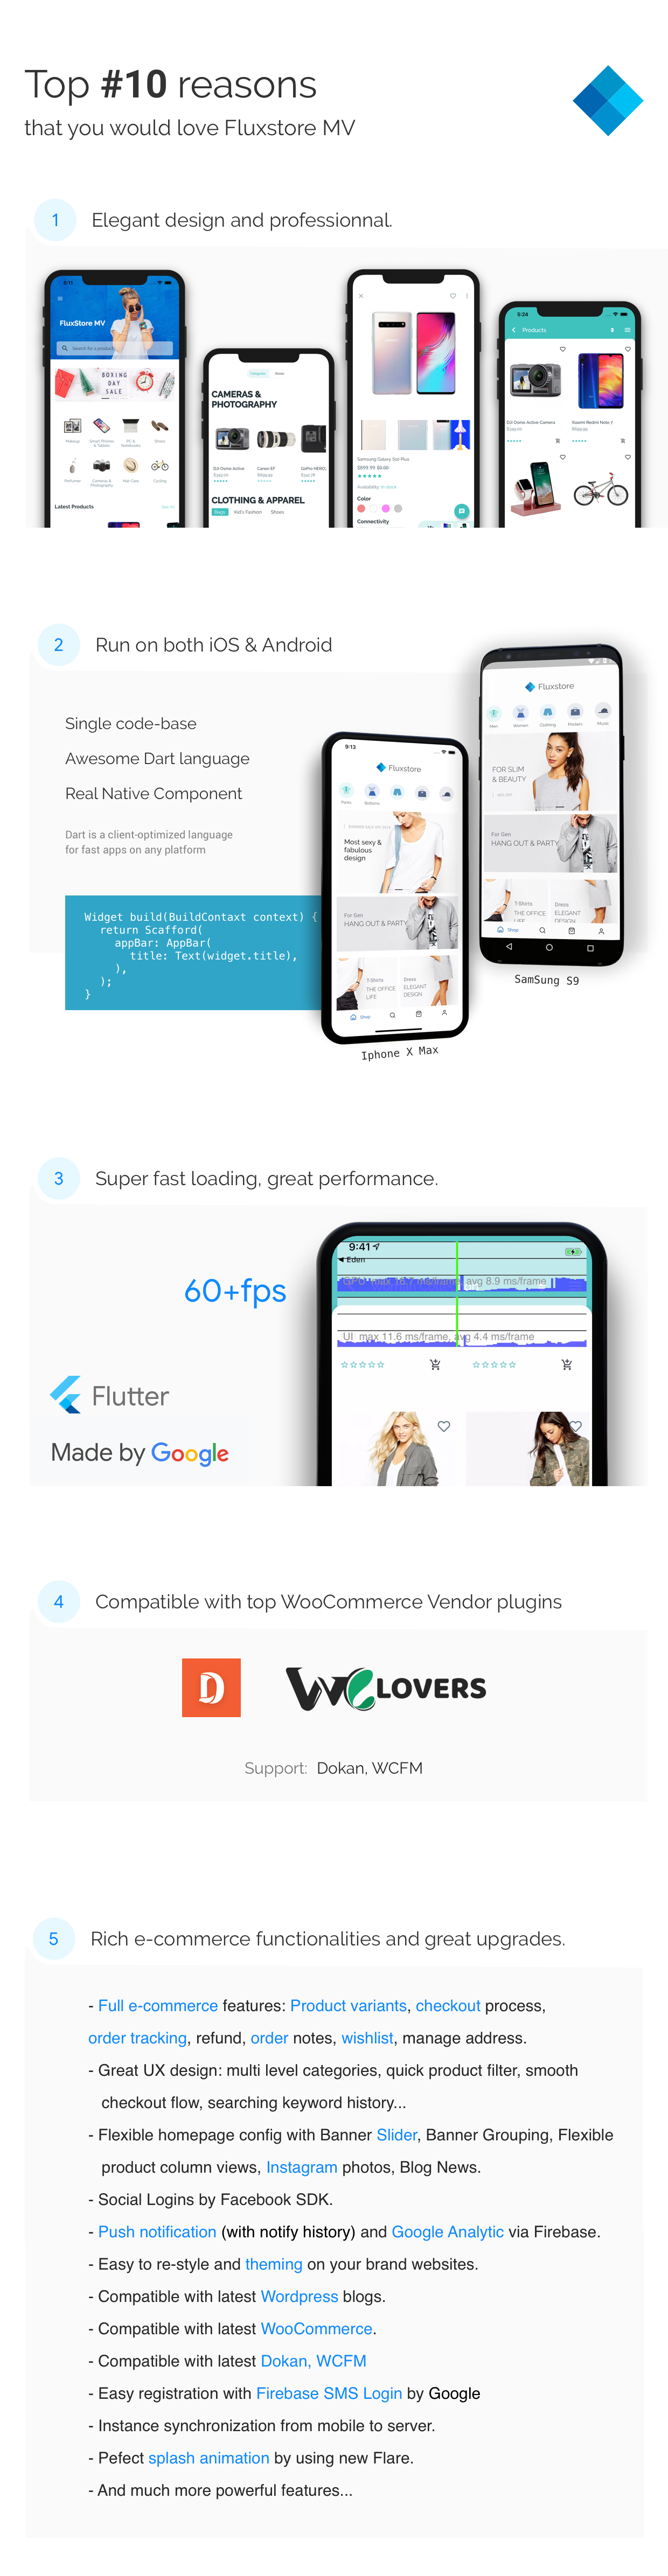 Fluxstore Multi Vendor - Flutter E-commerce Full App - 4